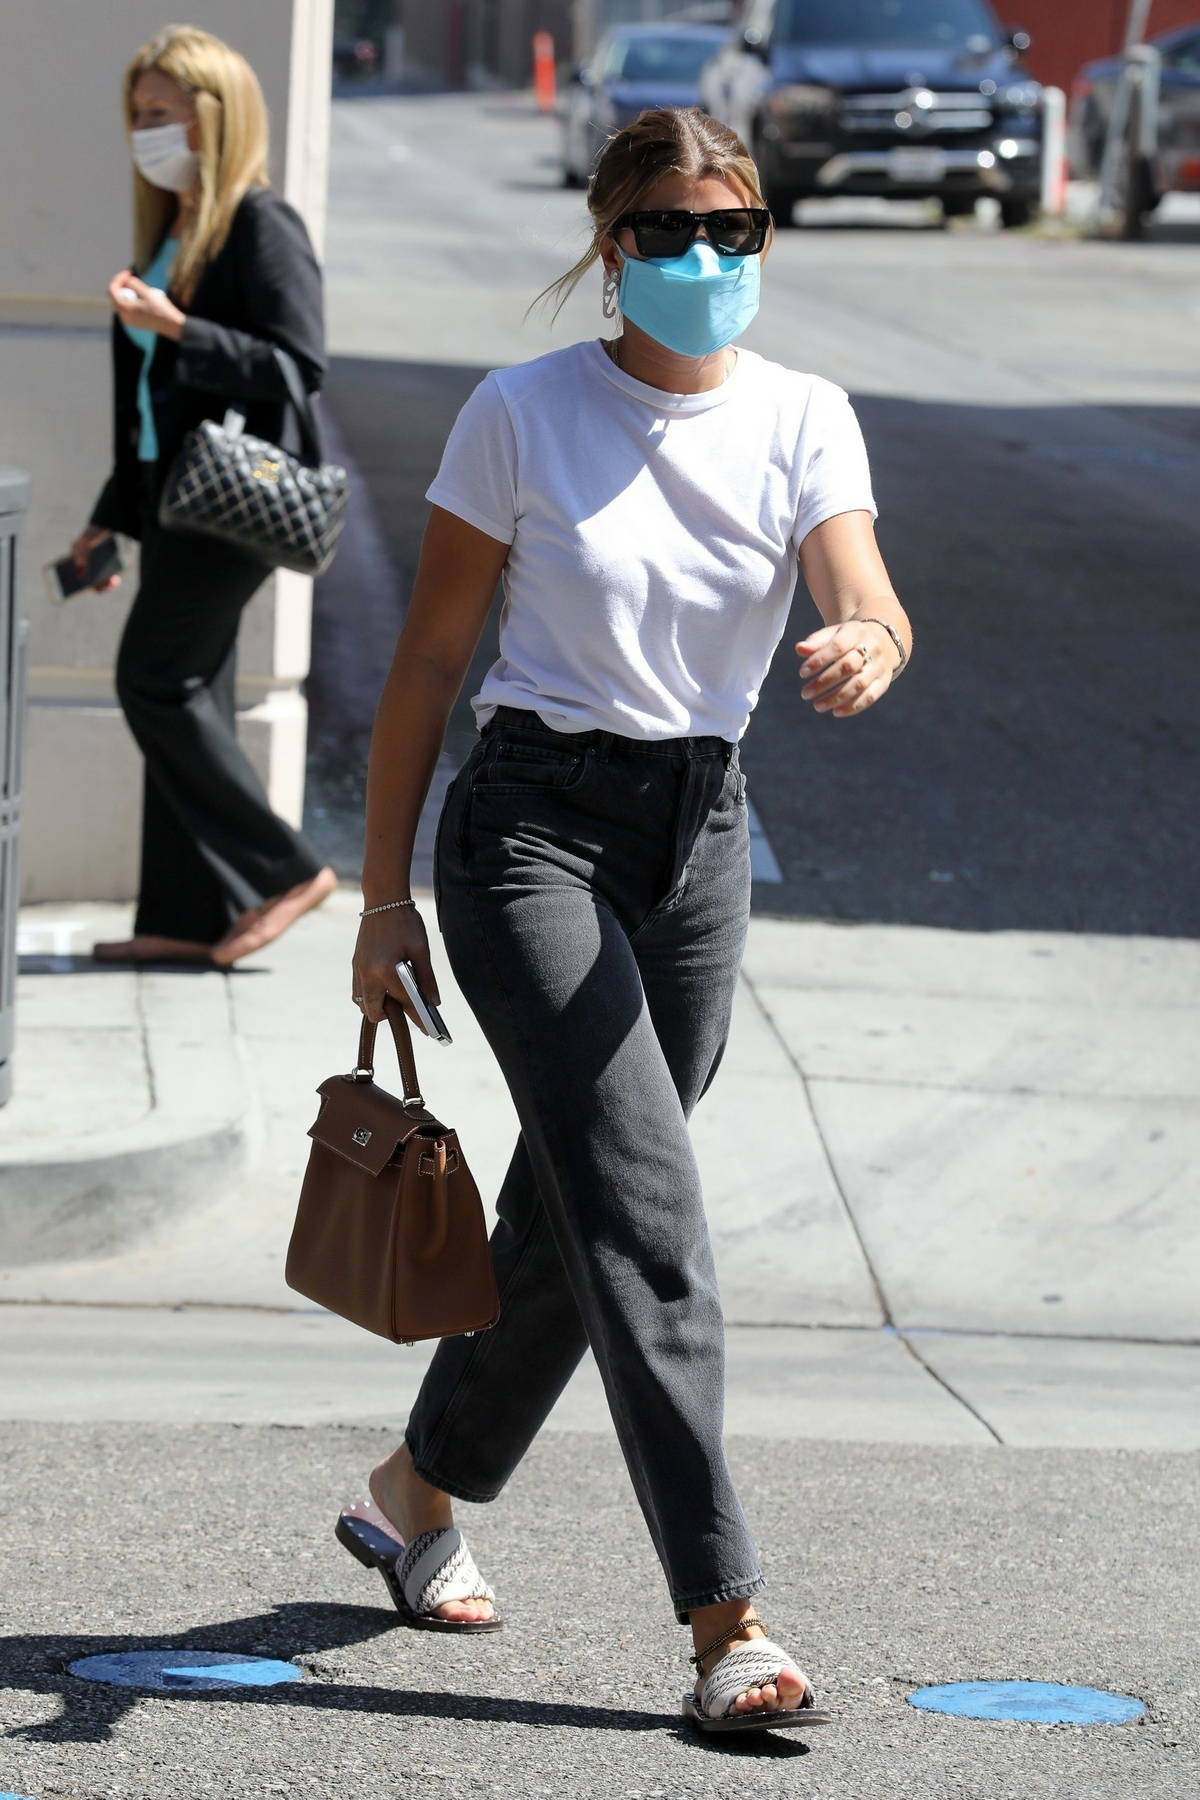 Sofia Richie spotted during a shopping trip with a friend at What Goes Around Comes Around in Beverly Hills, California